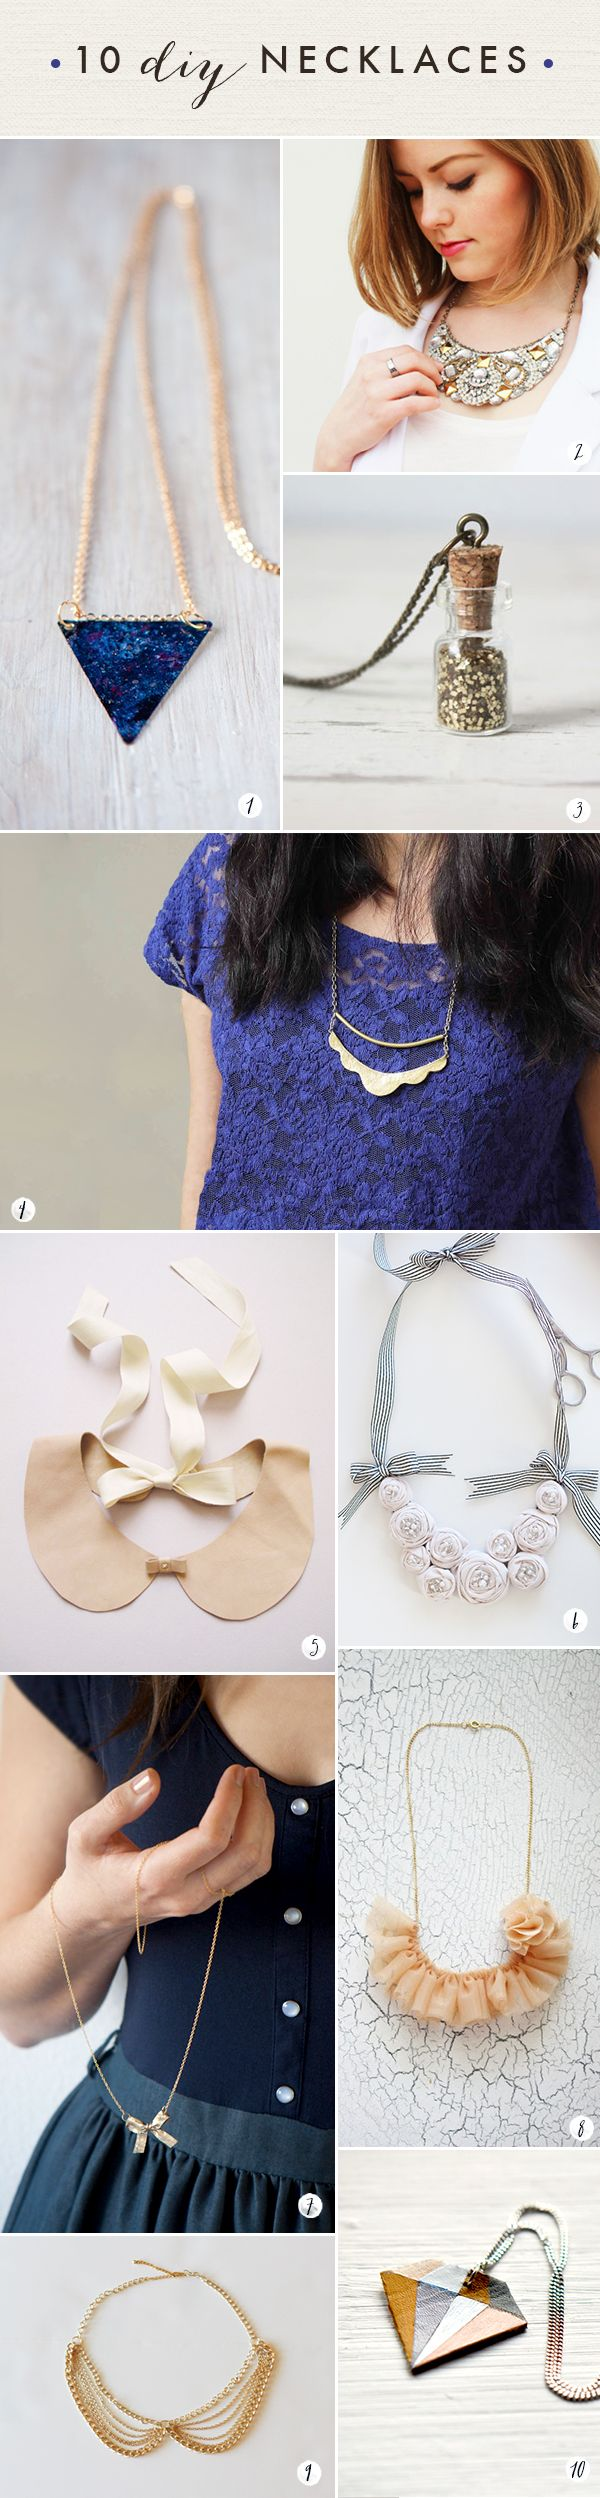 This site has some great jewelry DIYs - Oh the lovely things: 60 DIY Accessories- Last Minute Gifts For Fashionistas